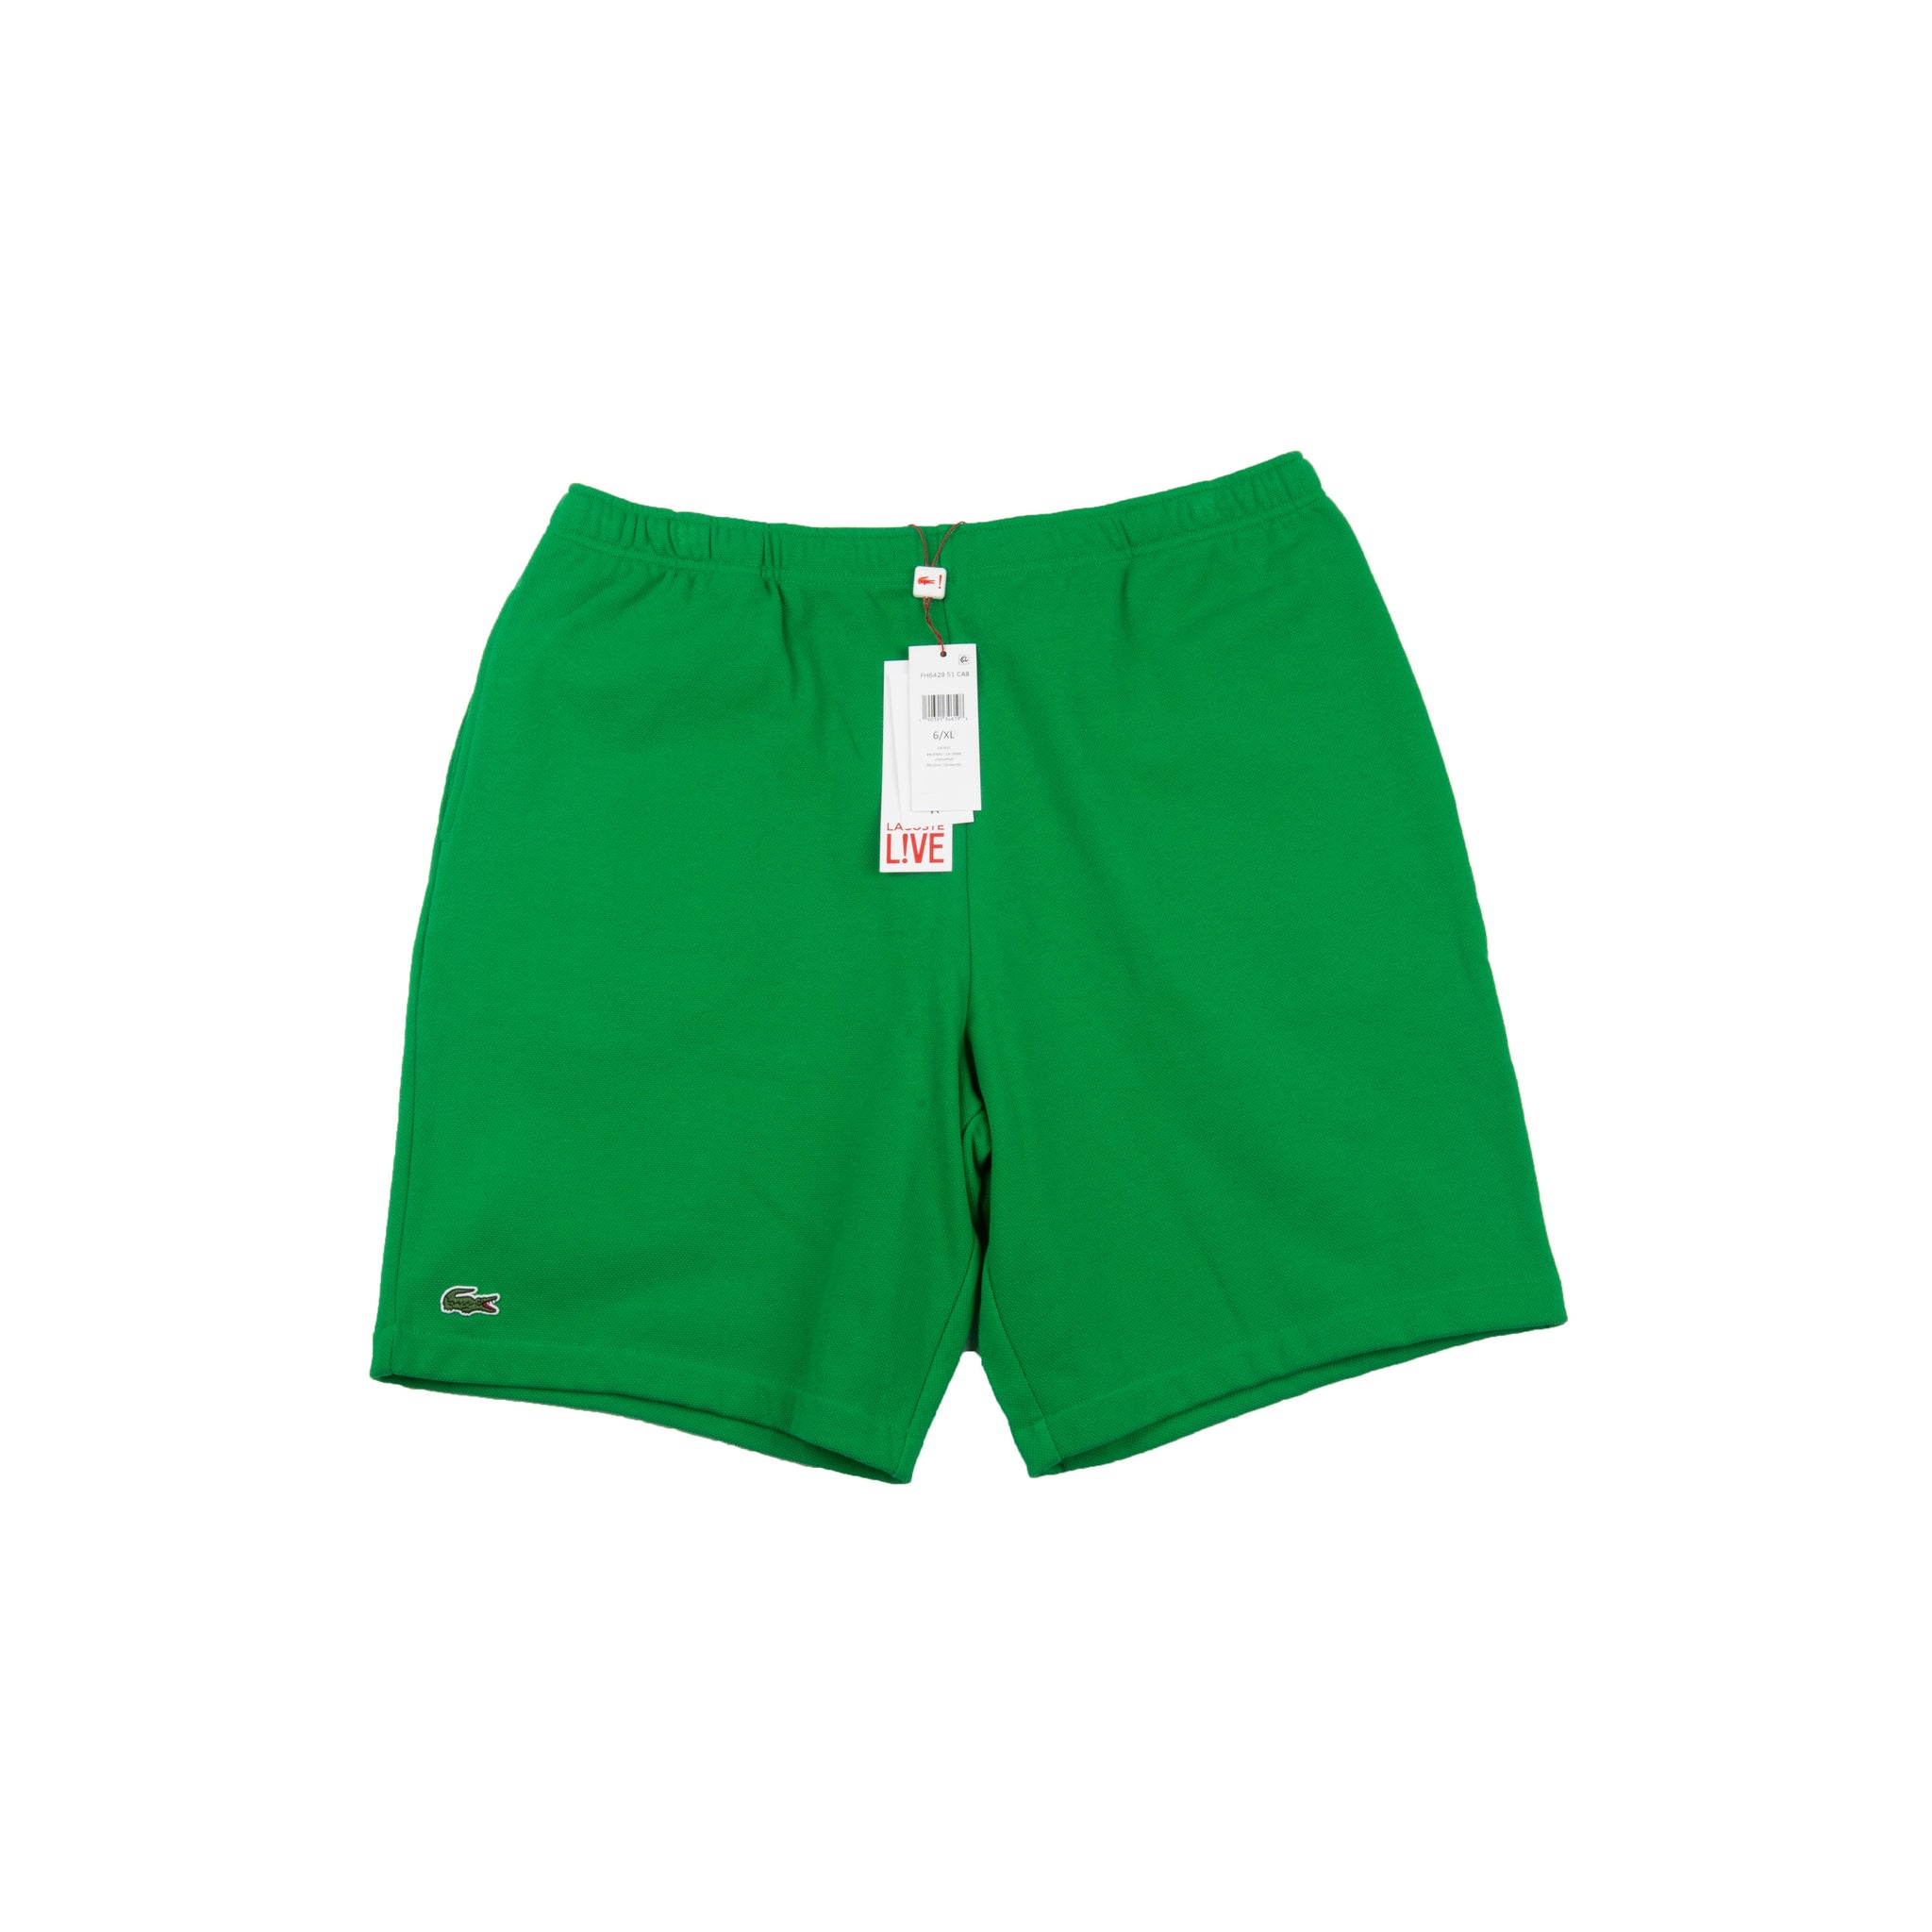 Supreme Green Lacoste Pique Shorts